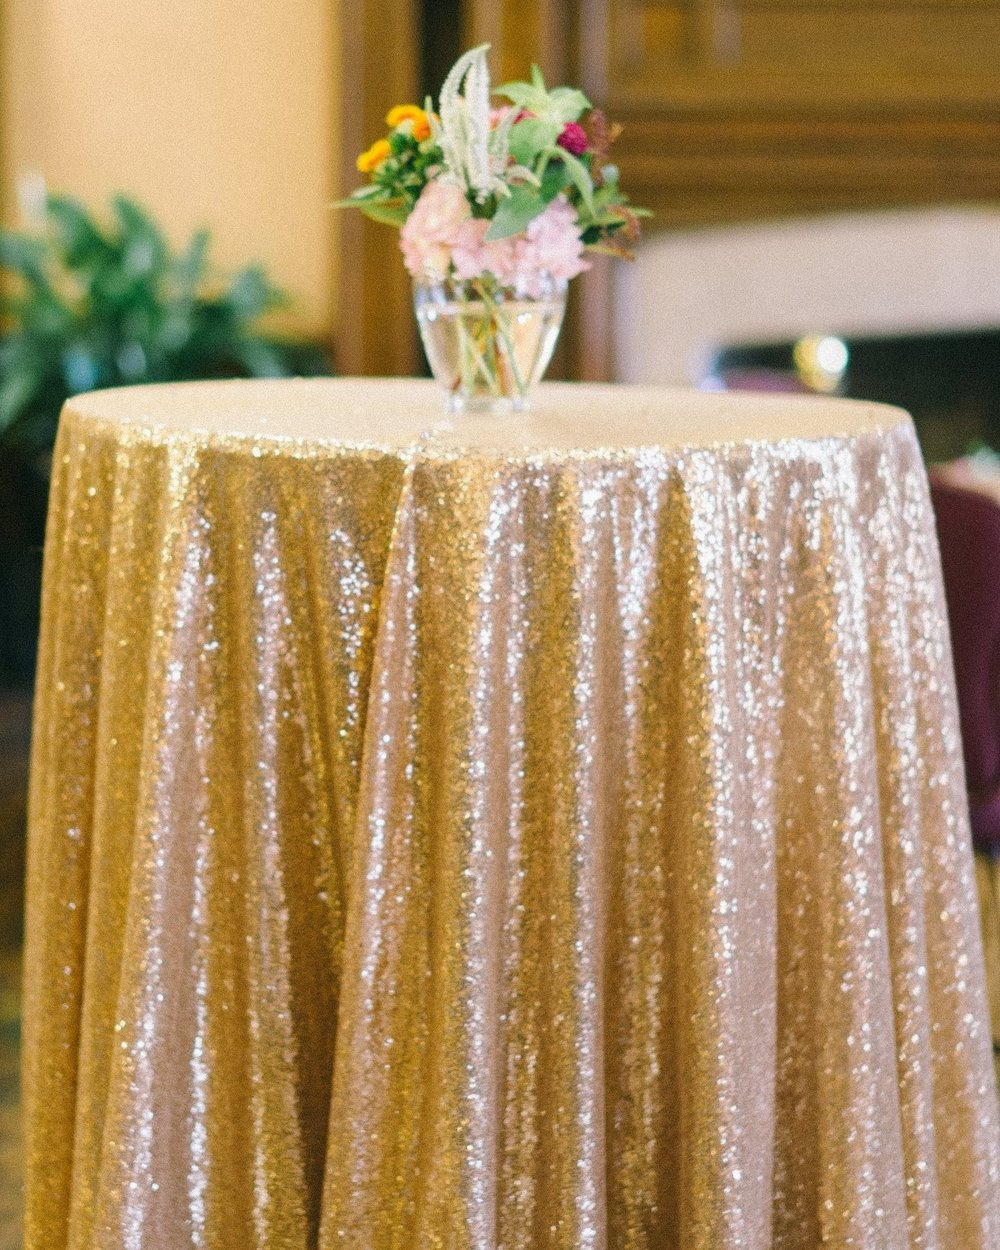 Gold sequin table linen with flowers on top